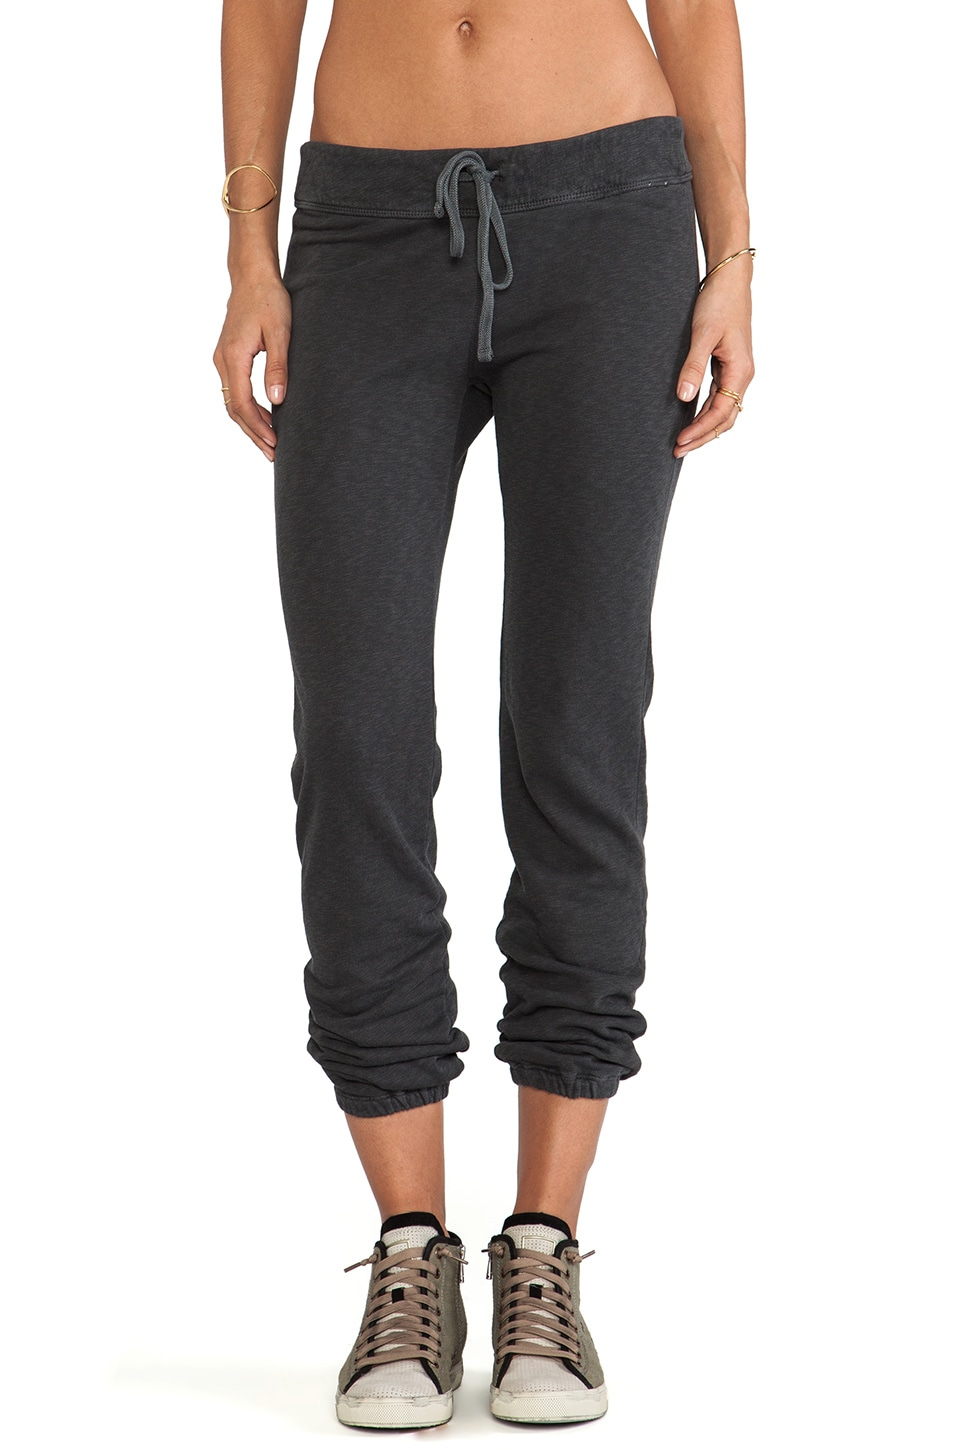 James Perse Genie Sweat Pant in Carbon